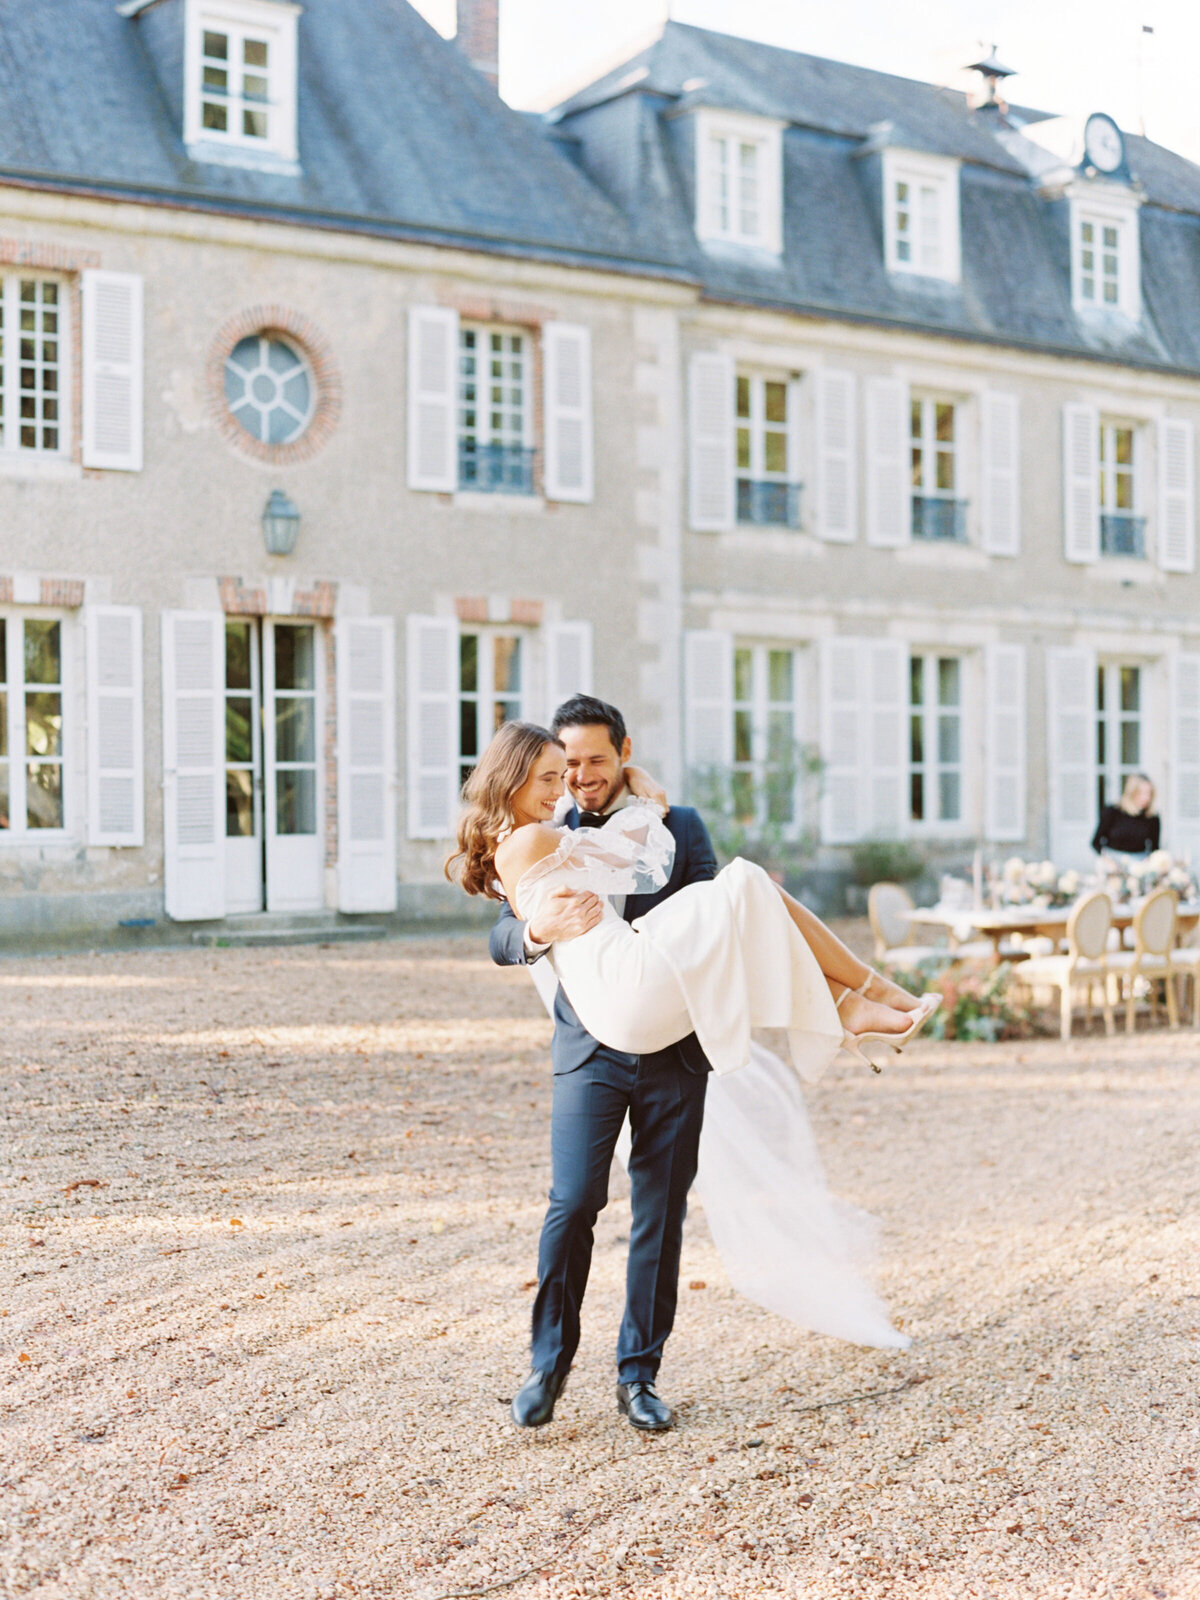 chateau-bouthonvilliers-wedding-paris-wedding-photographer-mackenzie-reiter-photography-62